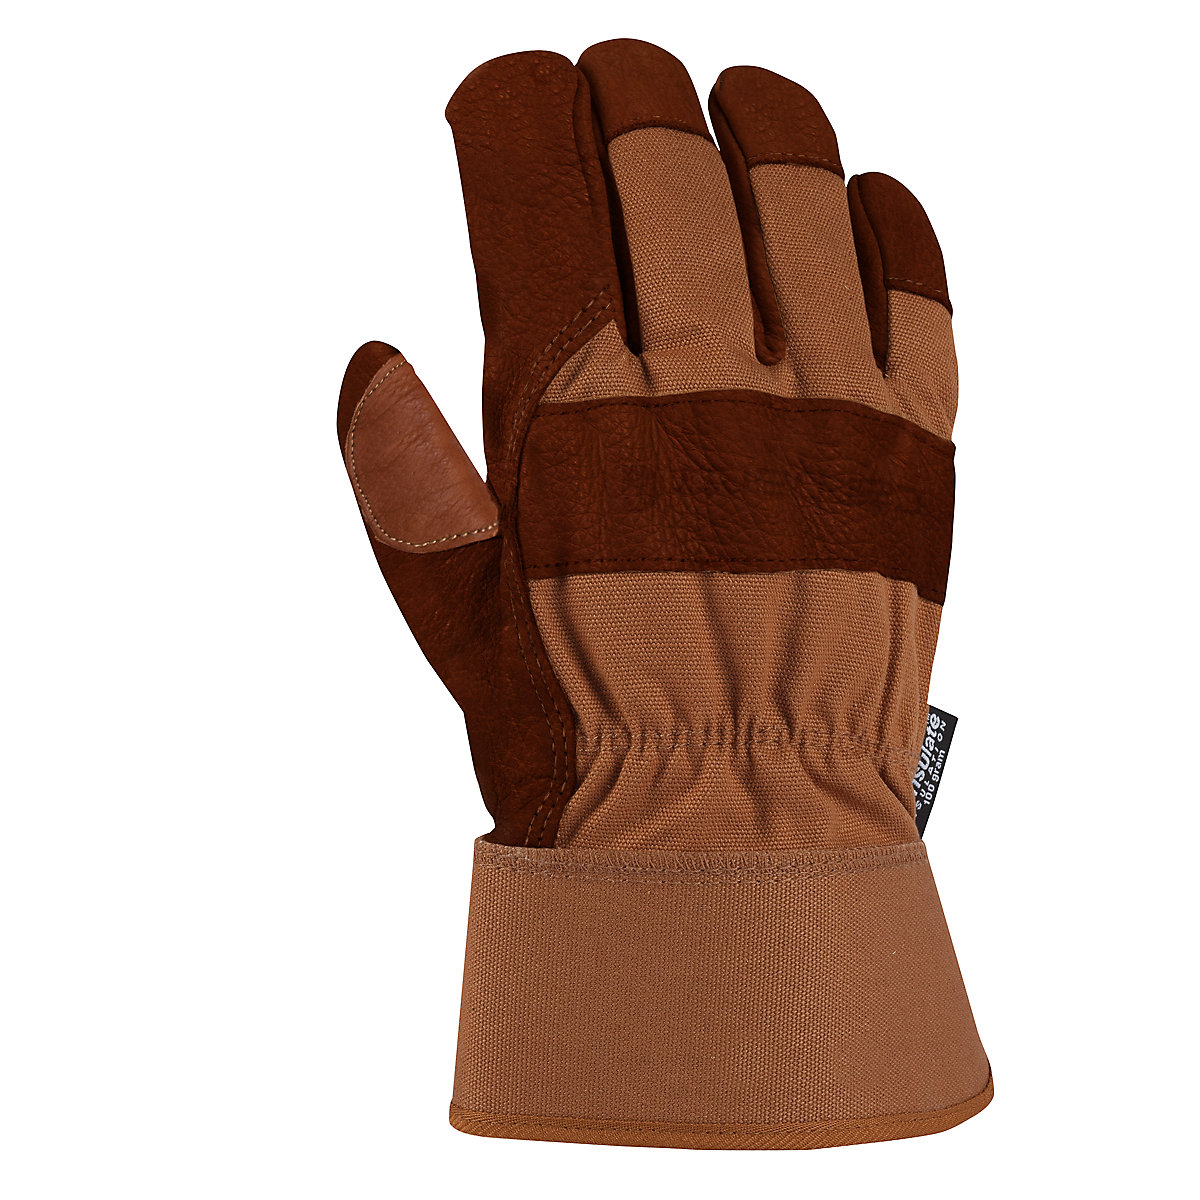 Men S Insulated Bison Leather Work Glove Safety Cuff A513b